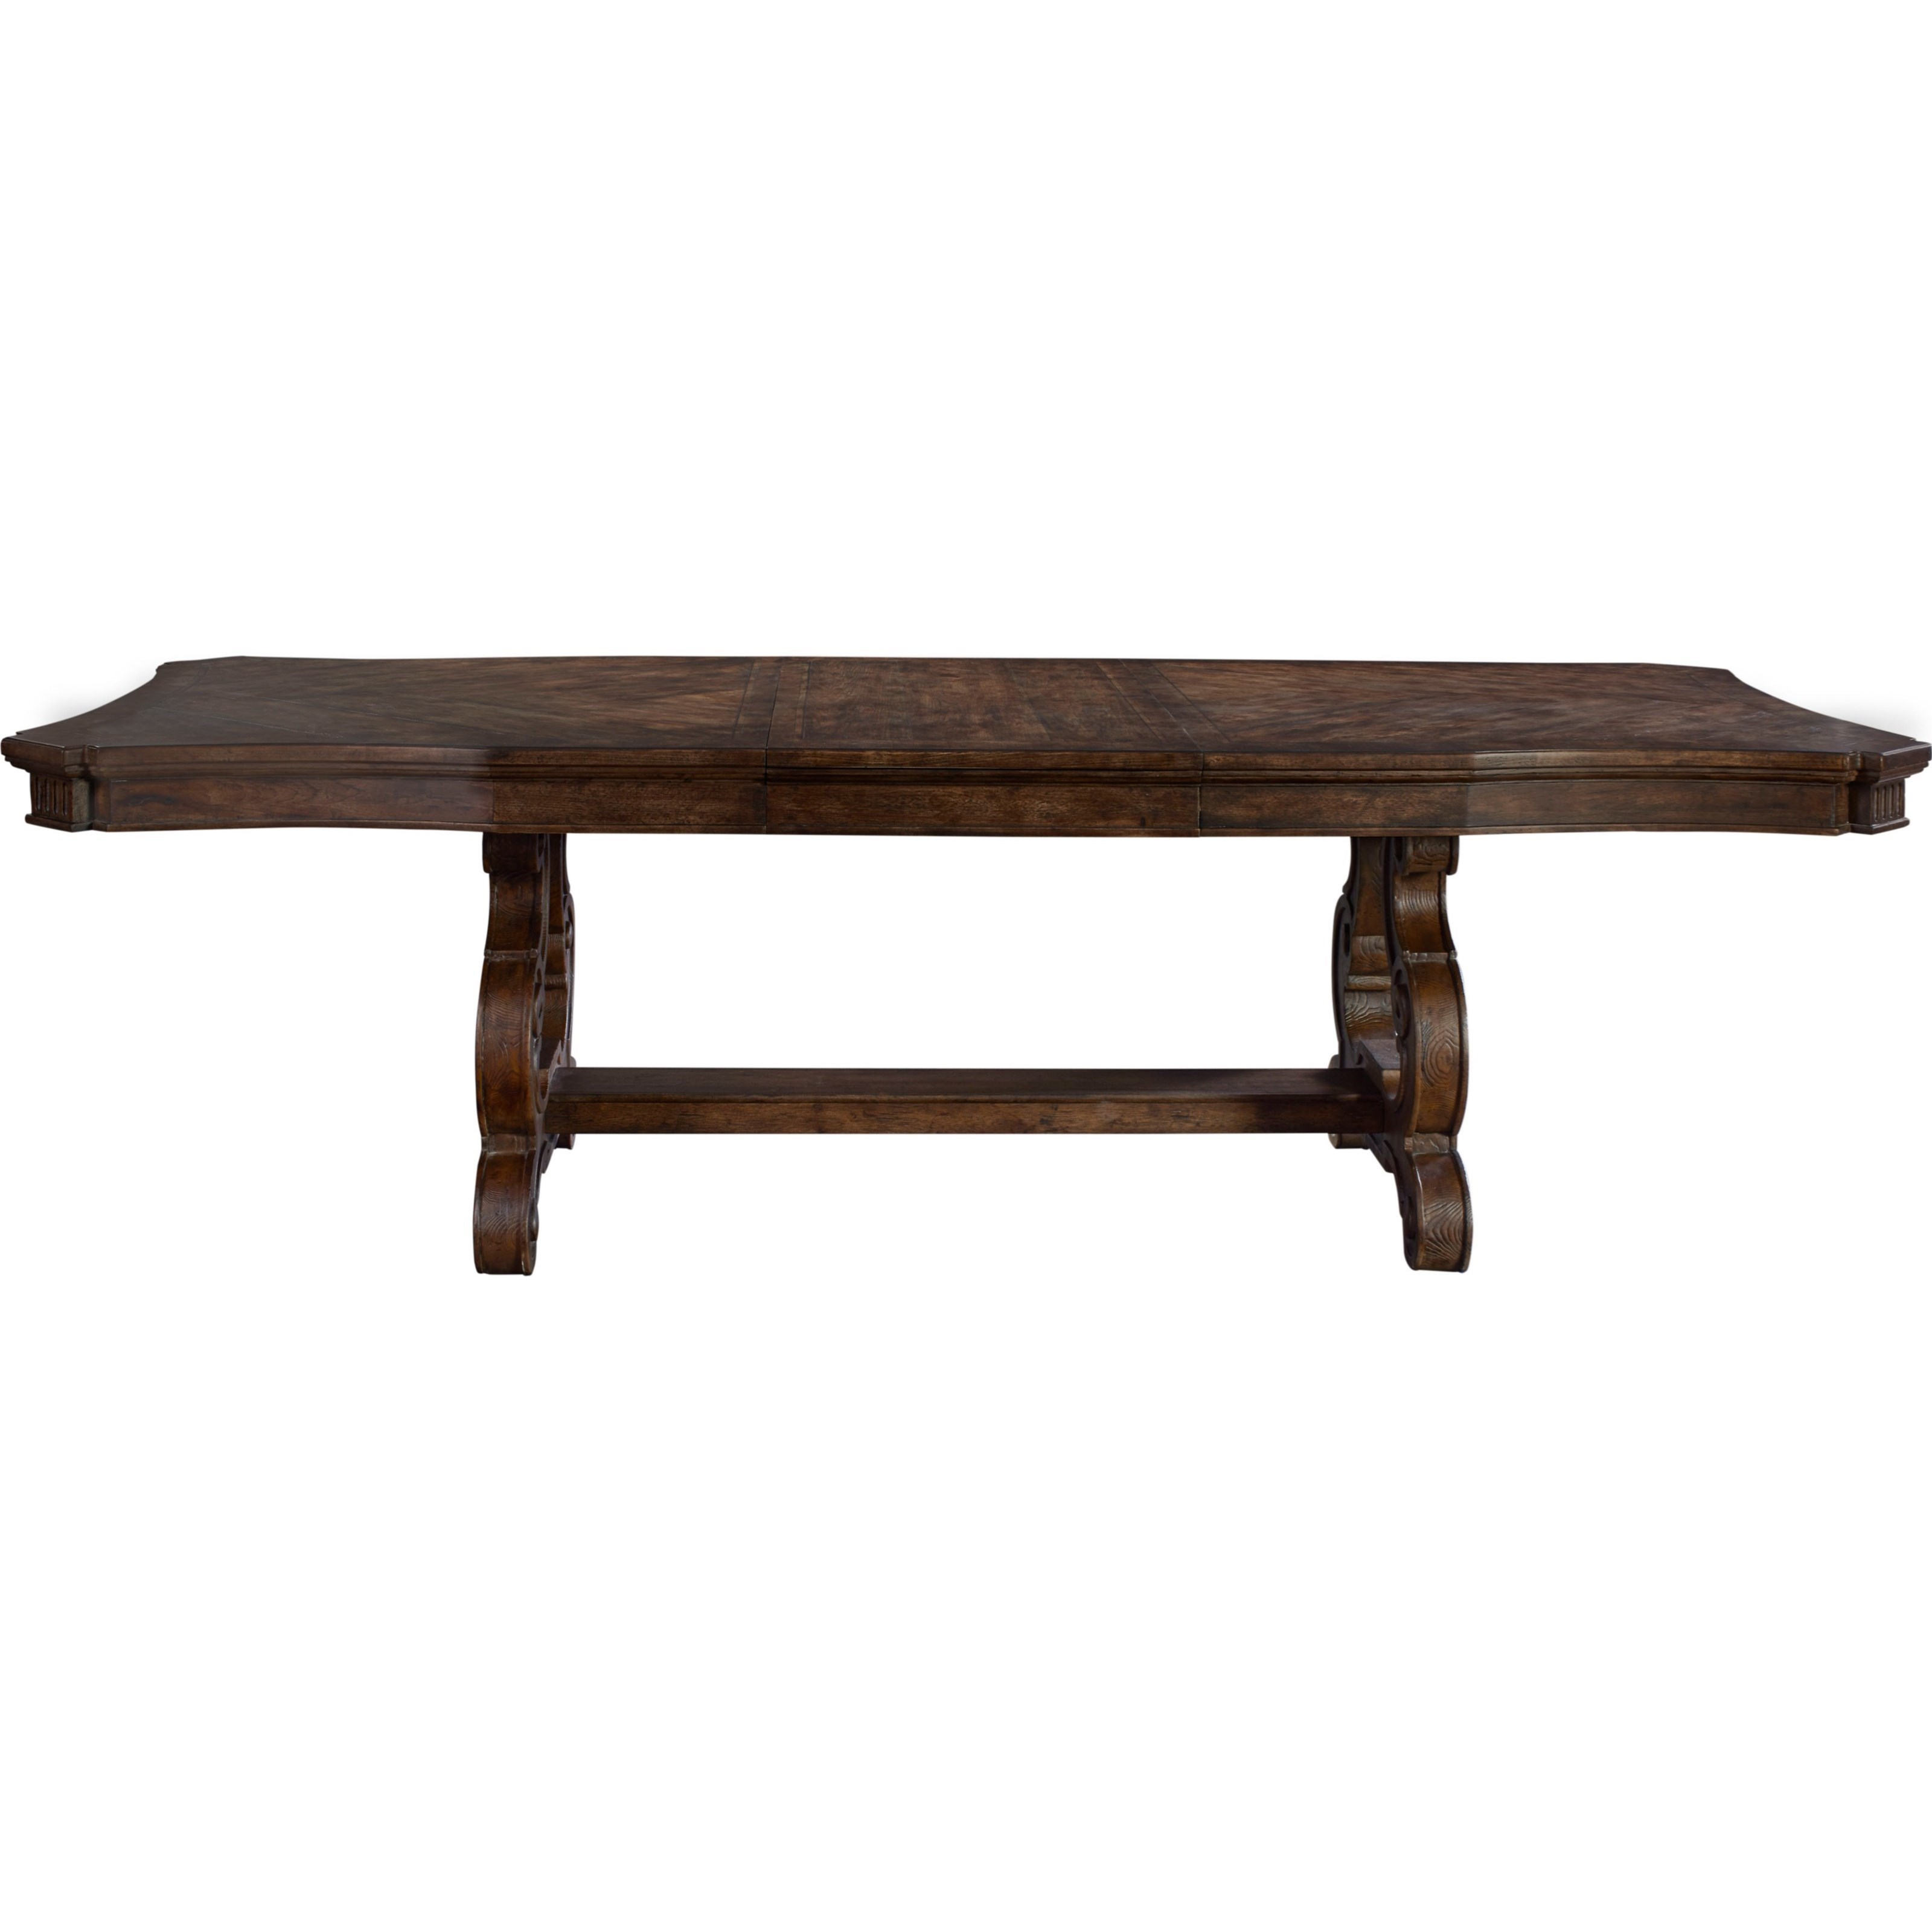 Thomasville® Casa Veneto Stella Trestle Dining Table With Table Extension  Leaves